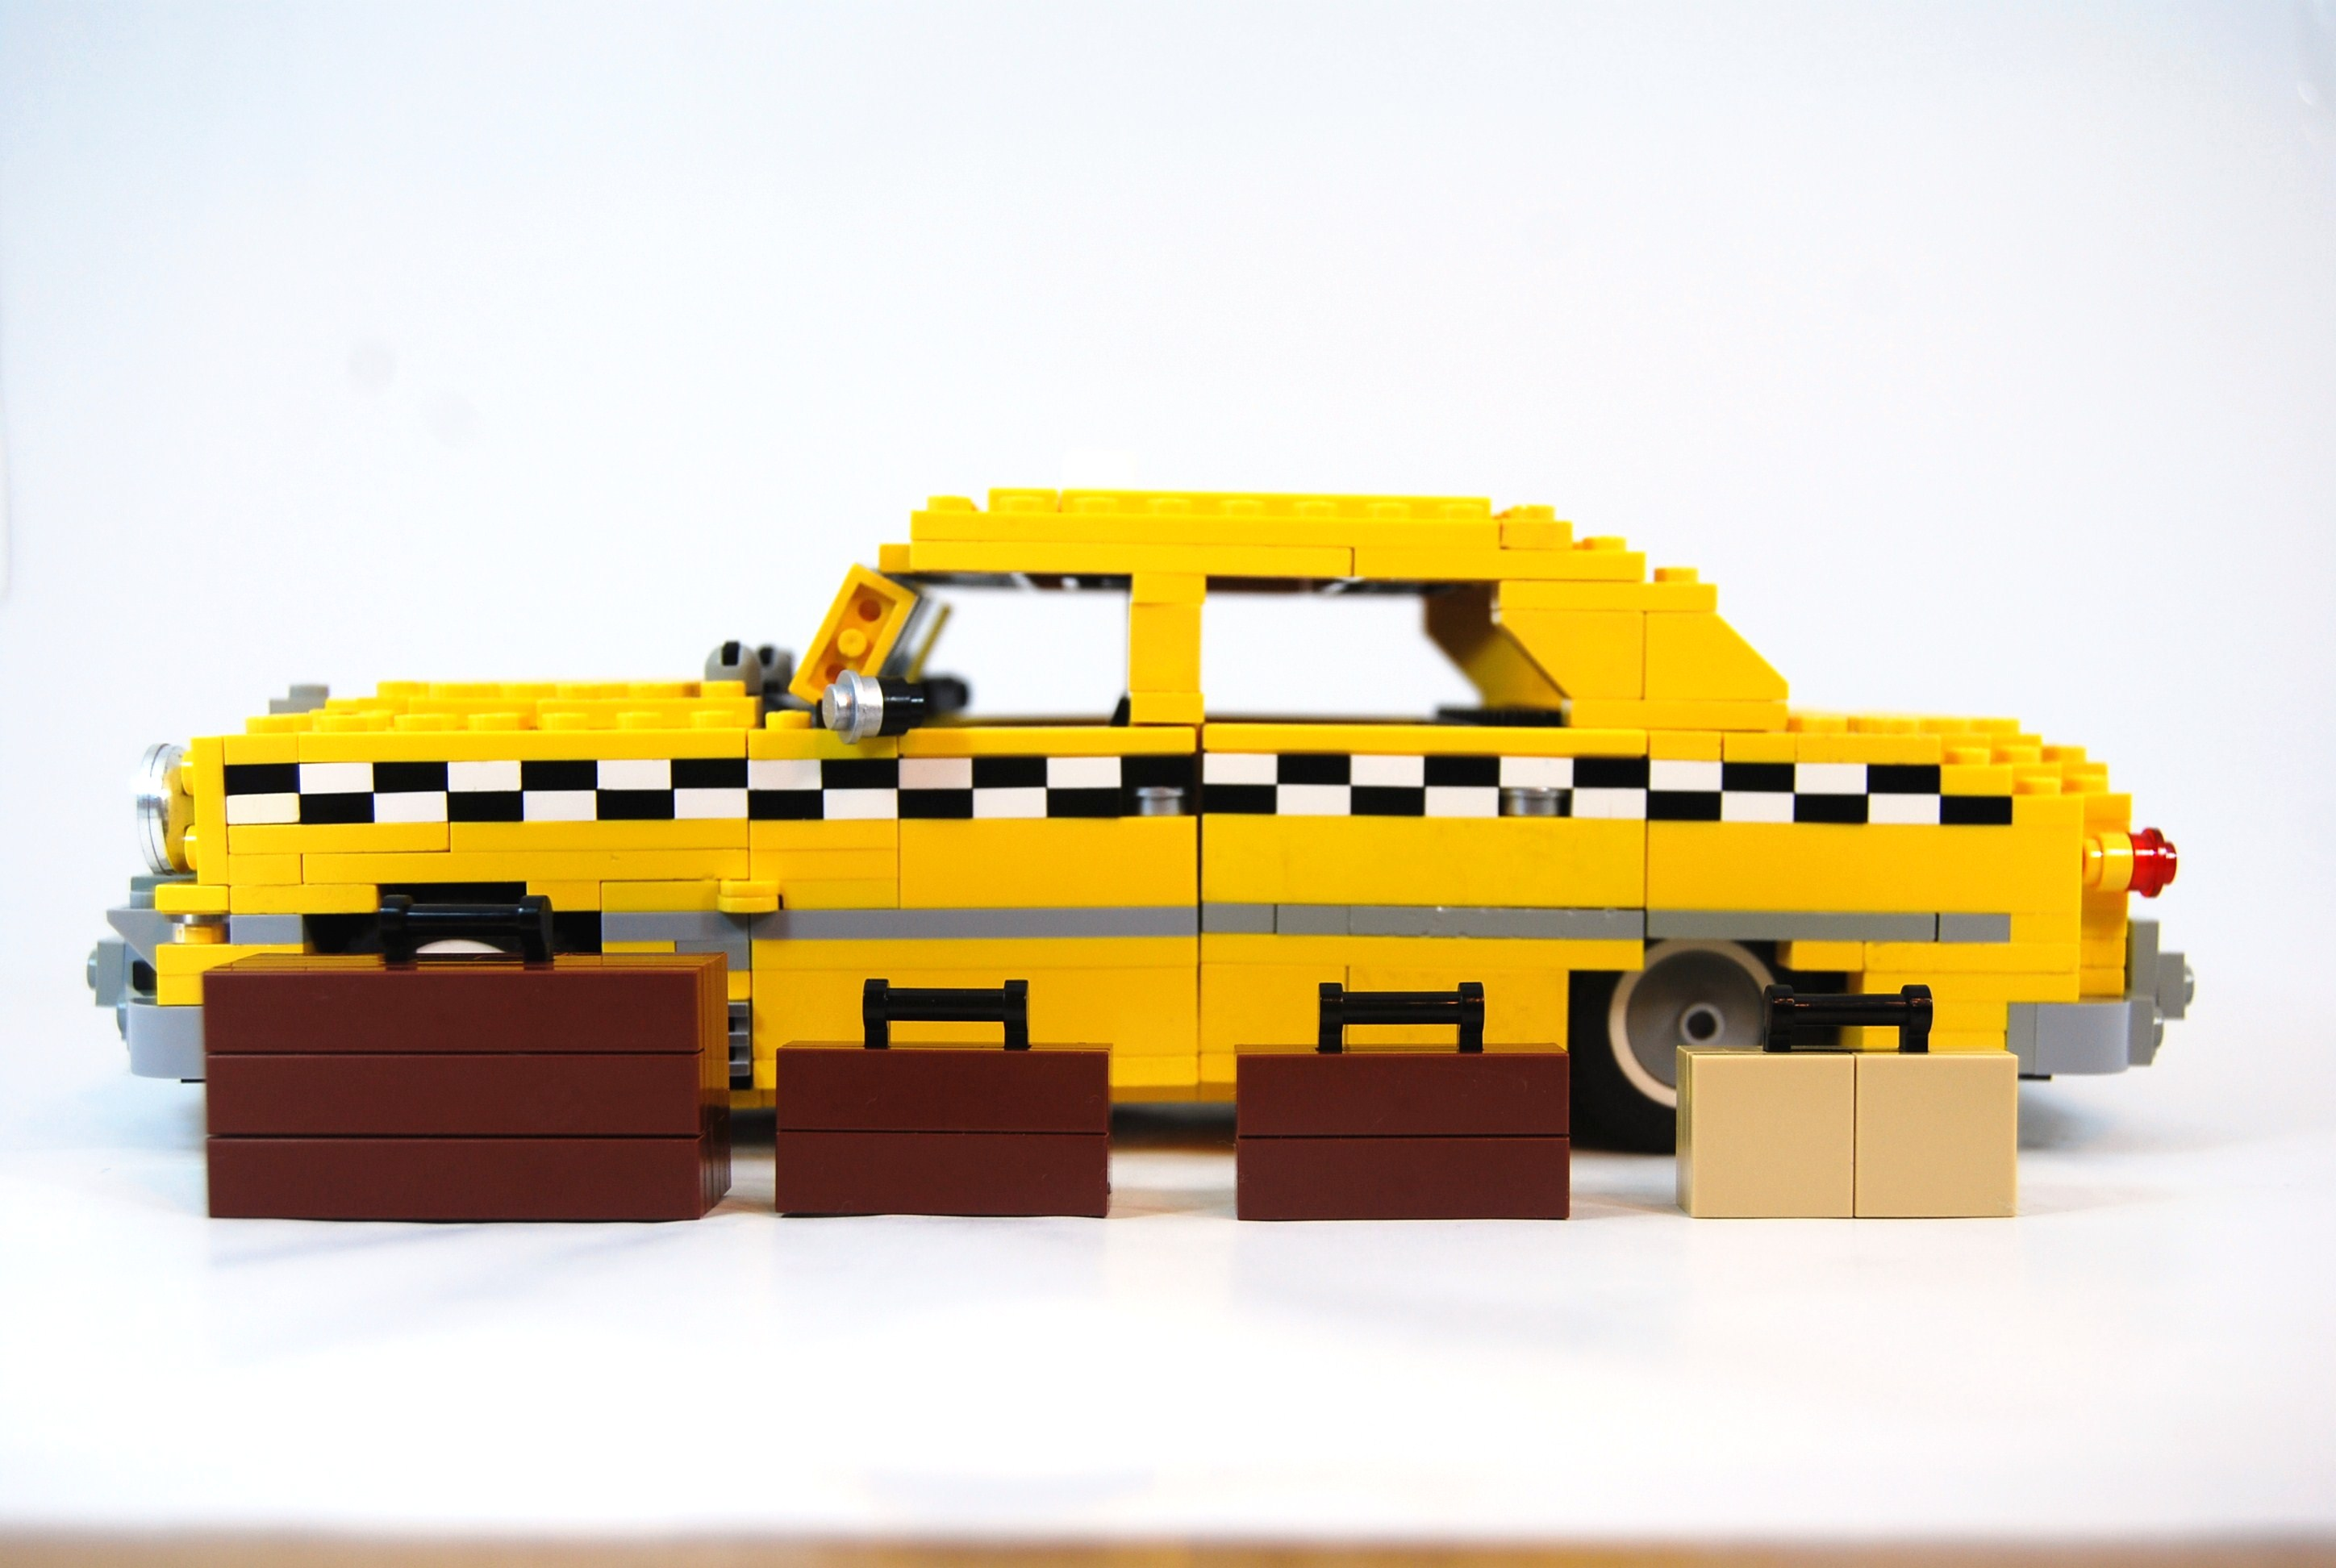 1949_ford_fordor_taxi_with_luggage_14.jpg